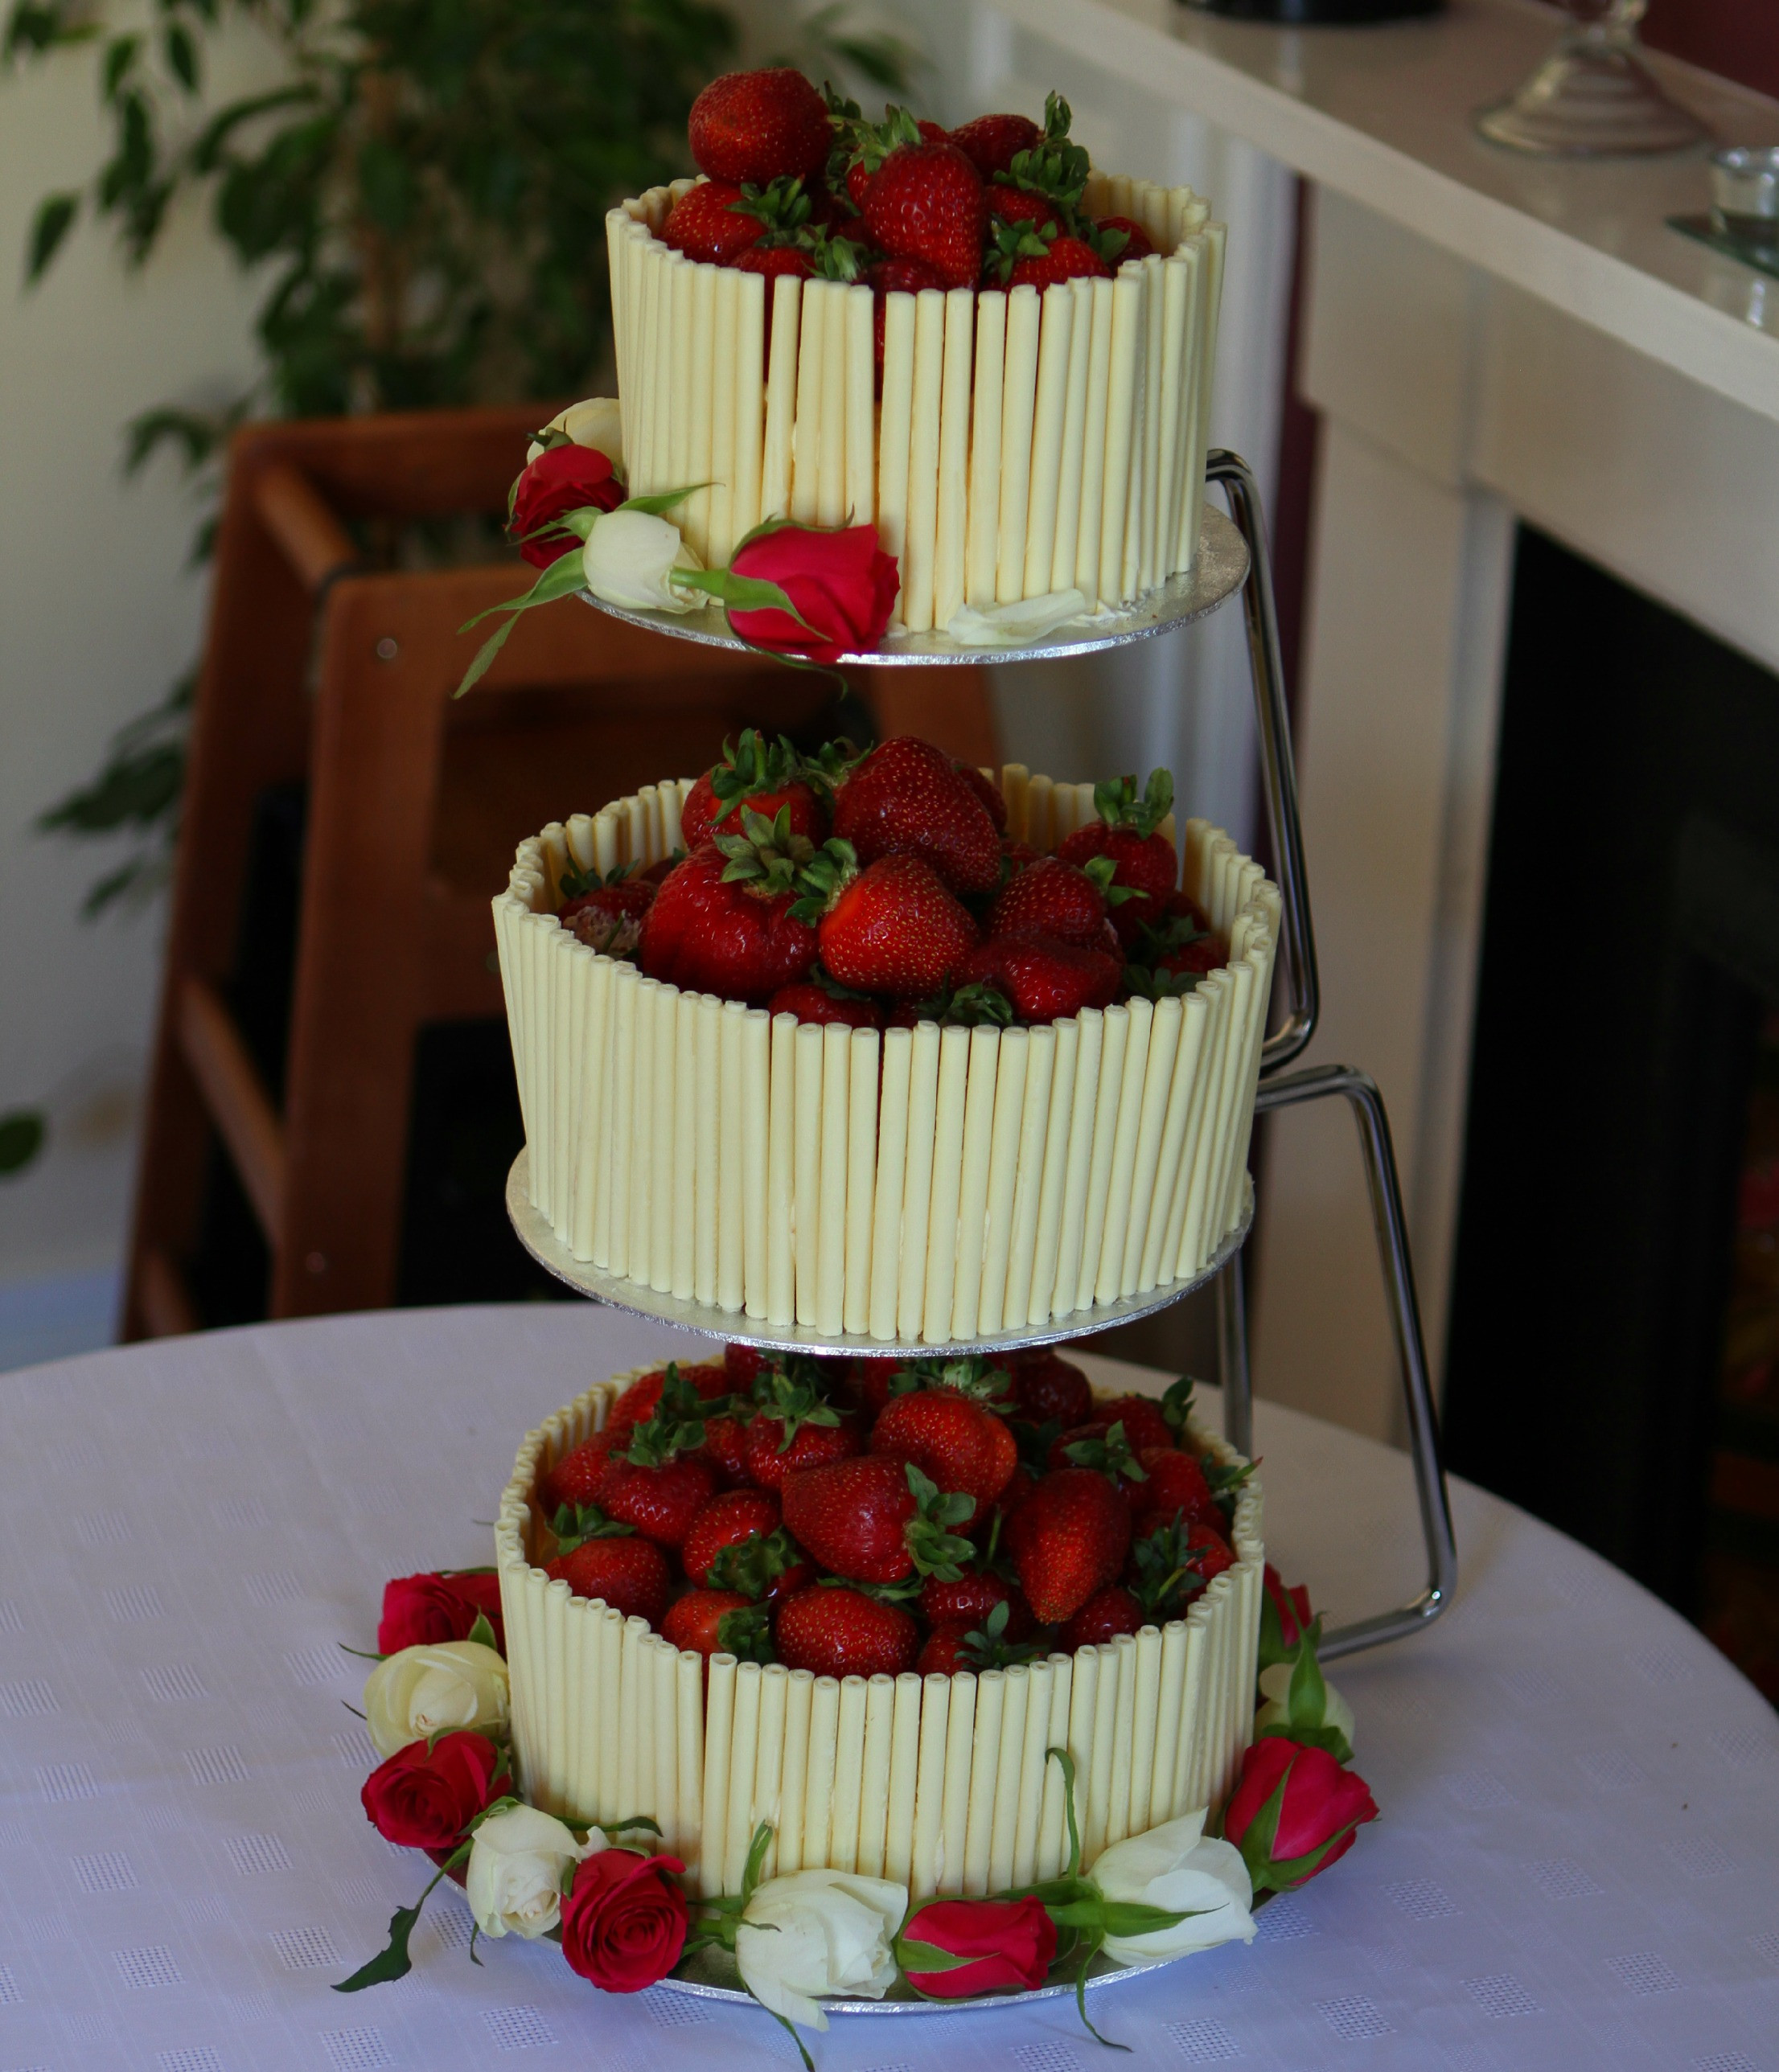 Strawberry Wedding Cake Recipes  Strawberry and White Chocolate Wedding Cake with an